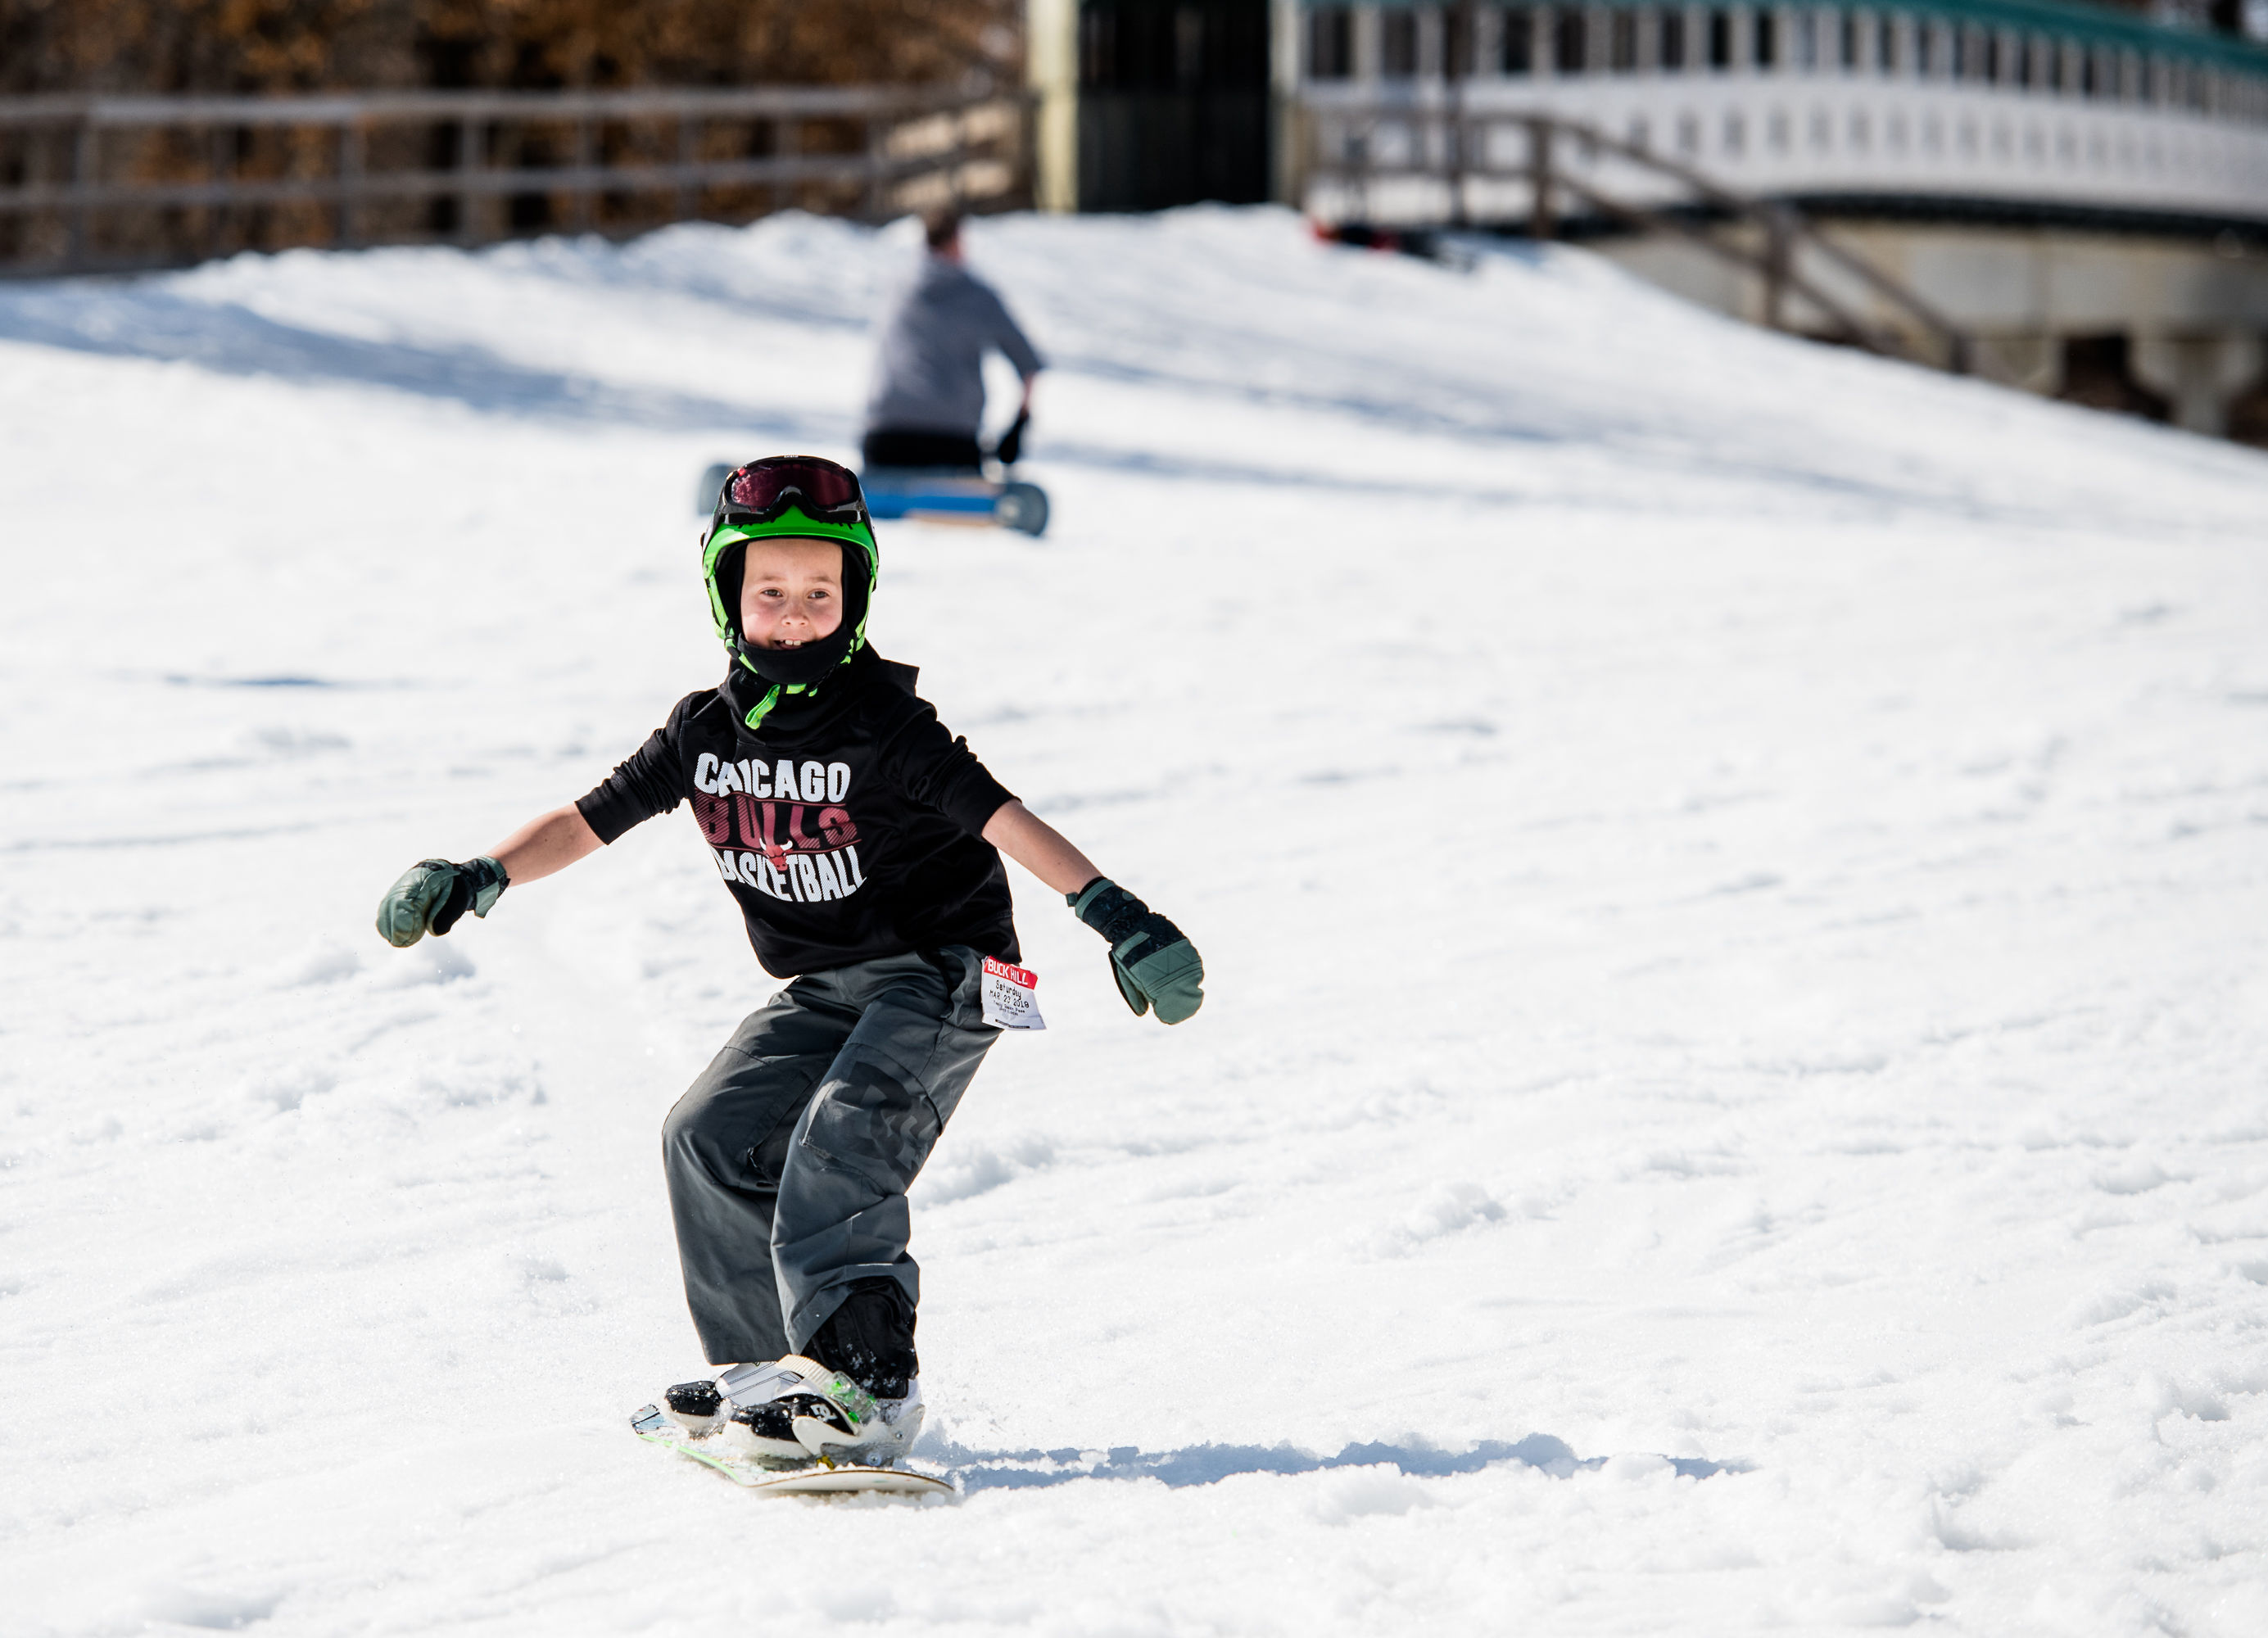 Child snowboarding down a snow hill